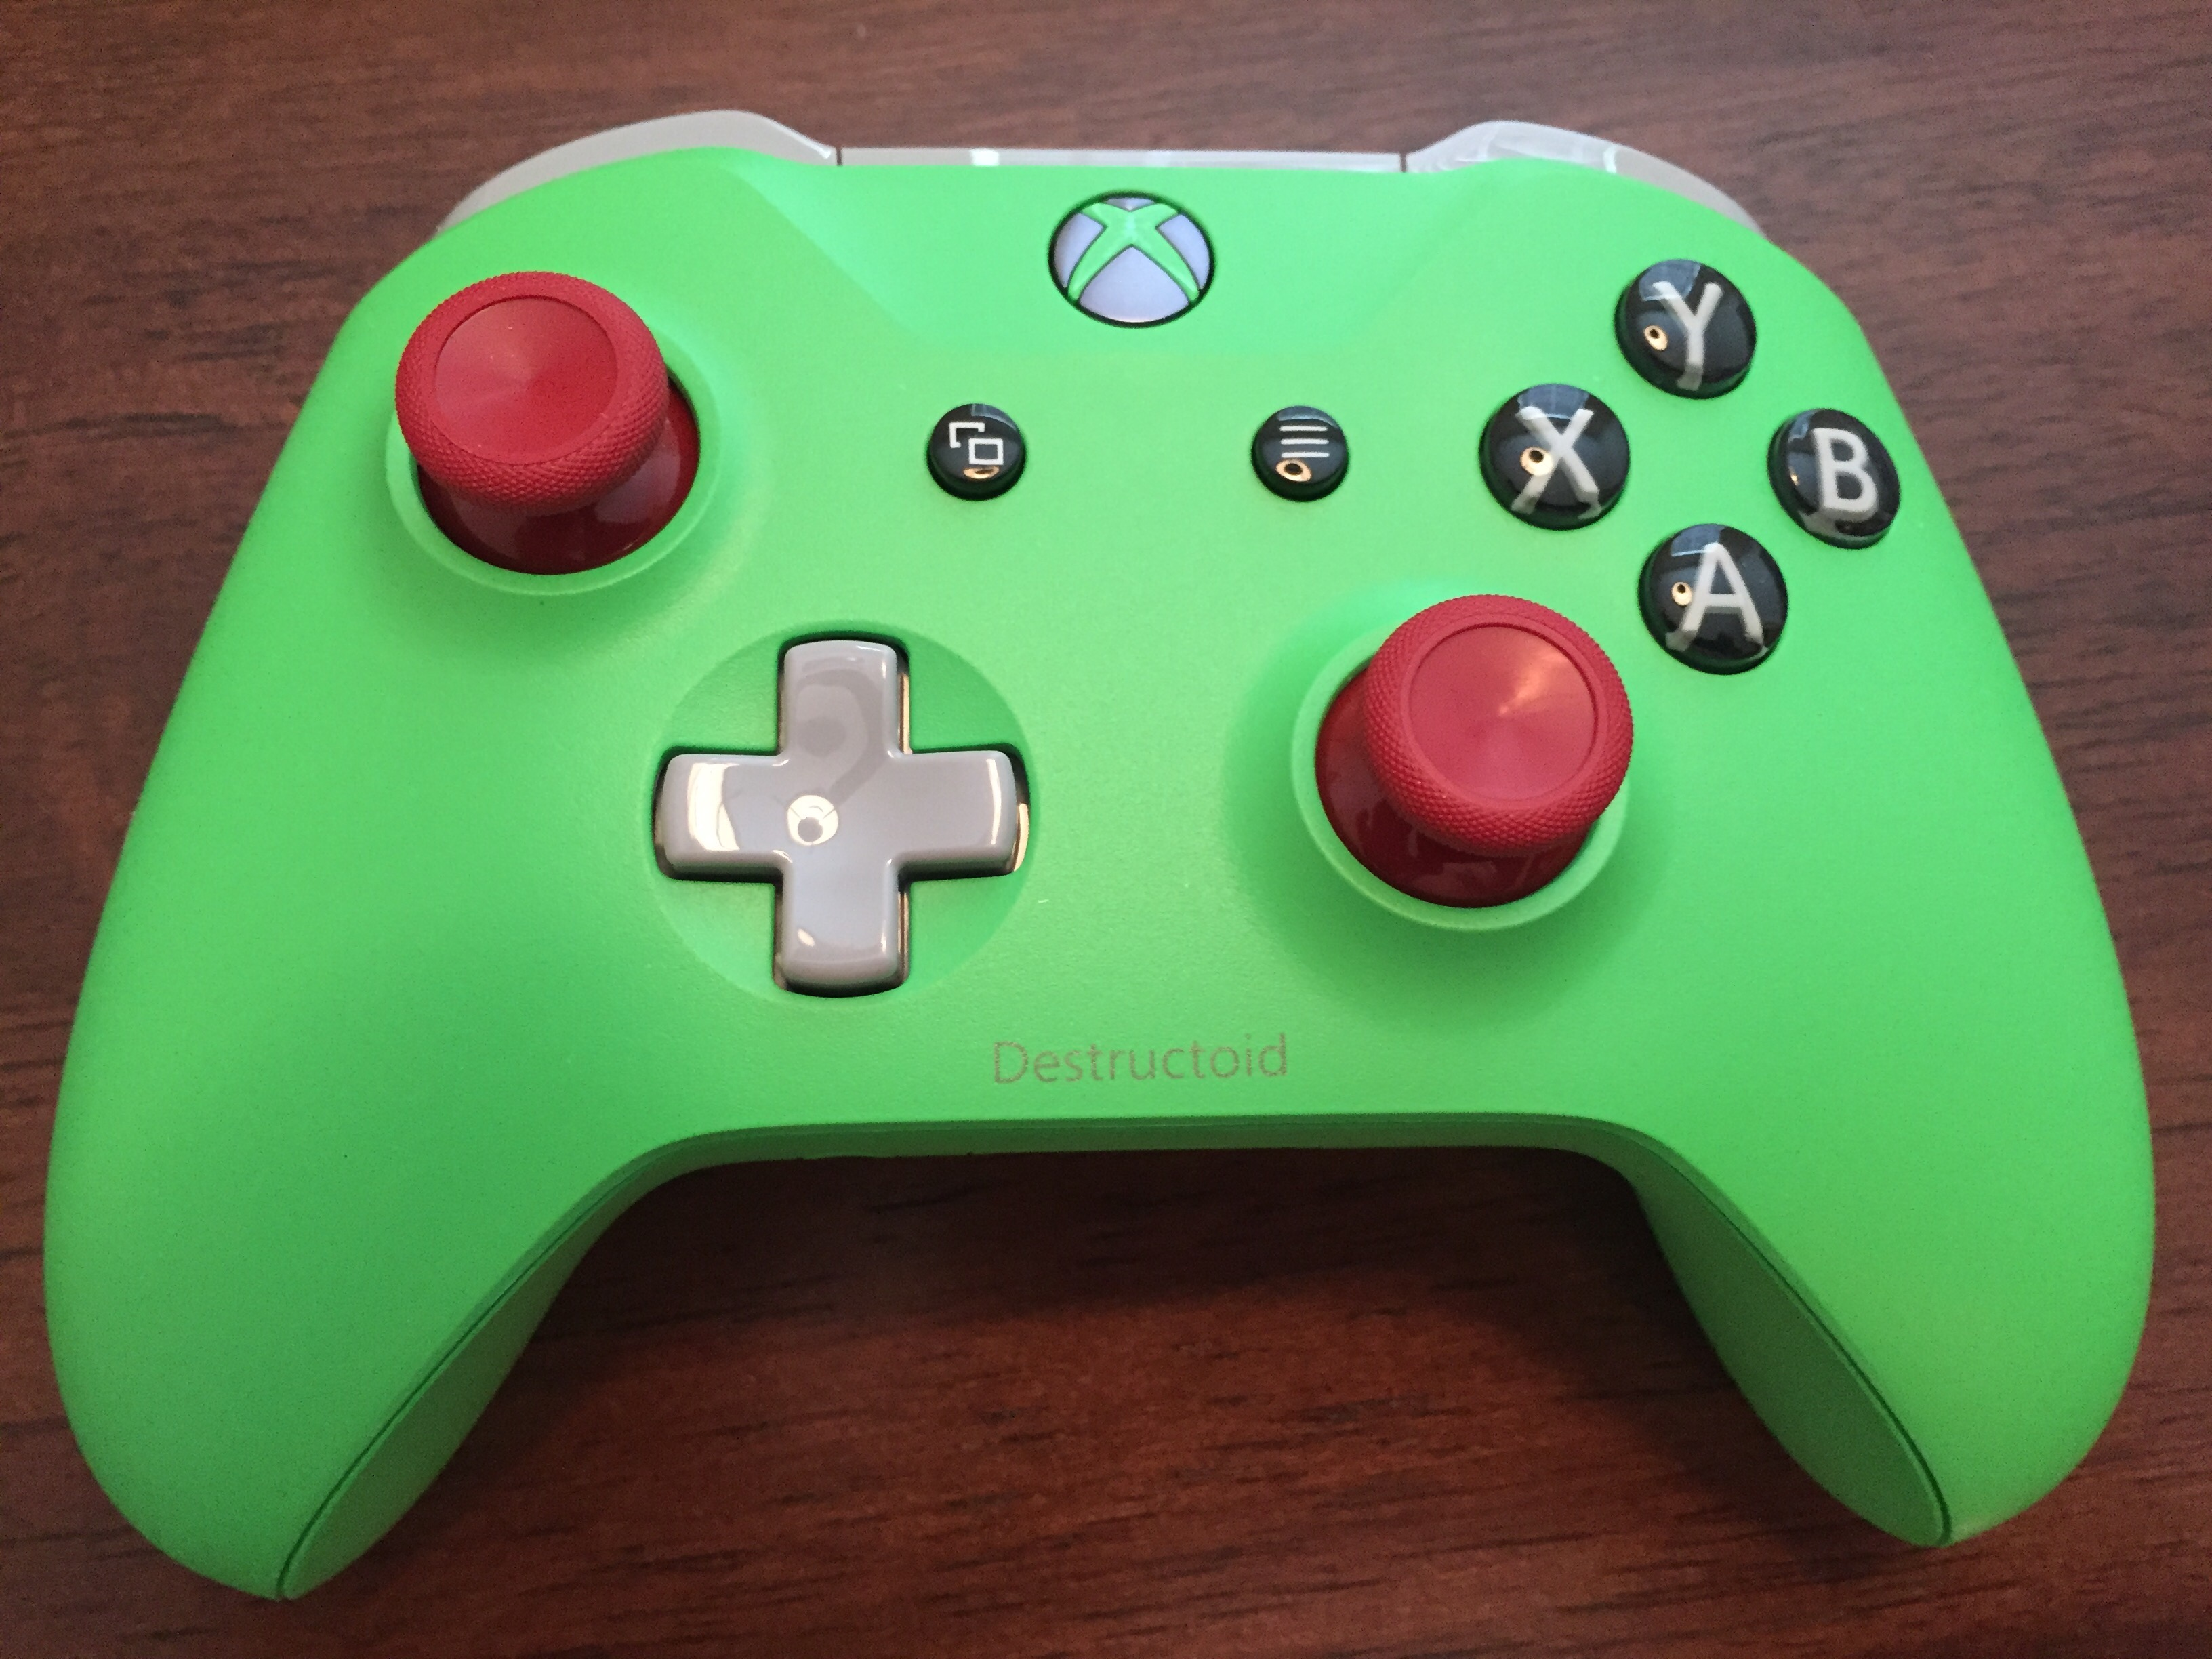 Take A Look At Our Custom Xbox One S Destructoid Controller